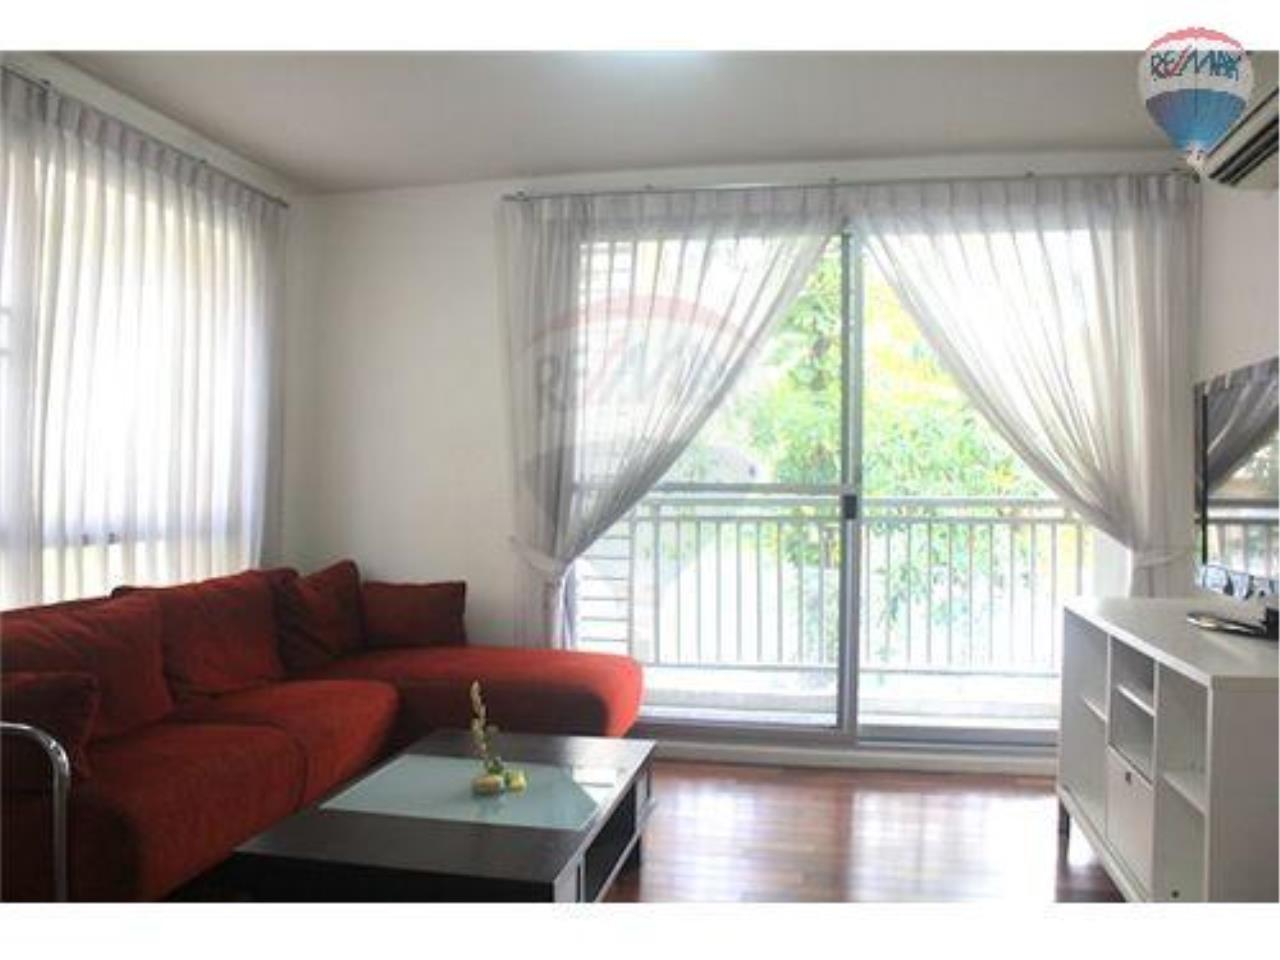 RE/MAX Properties Agency's 2 Bedroom Apartment- Sukhumvit Soi 49 3